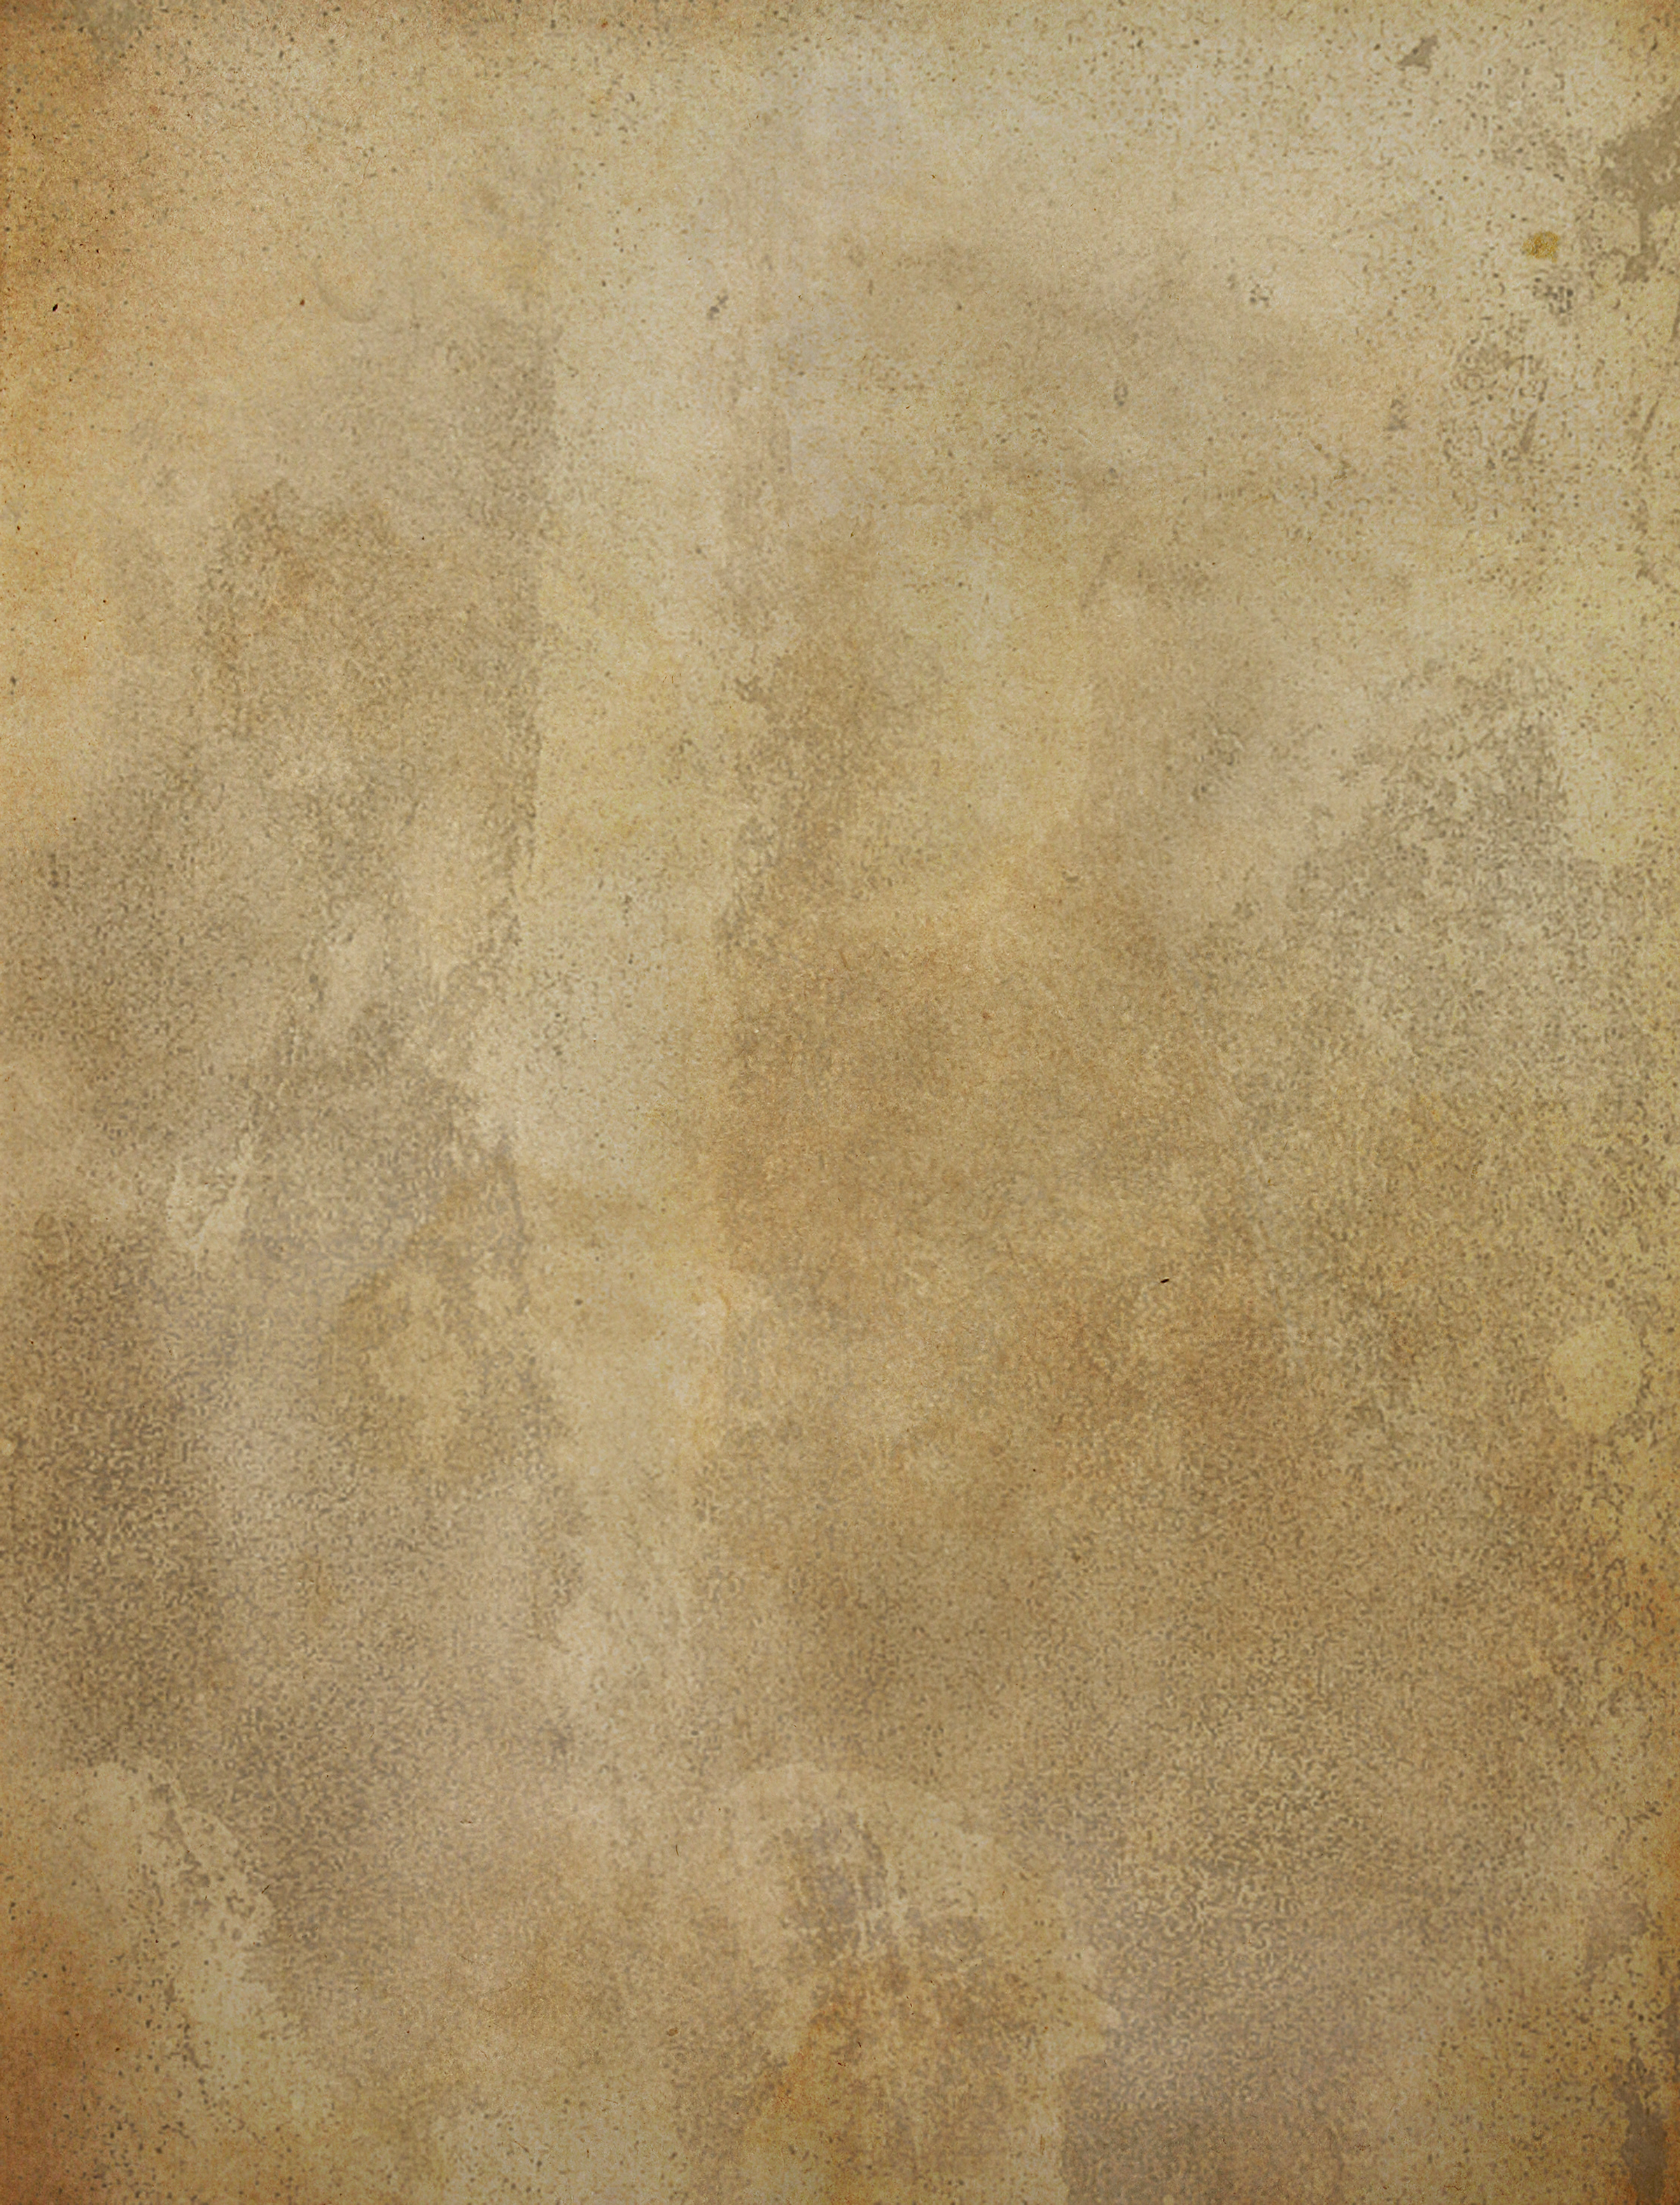 19 vintage texture photoshop images free photoshop for Texture background free download